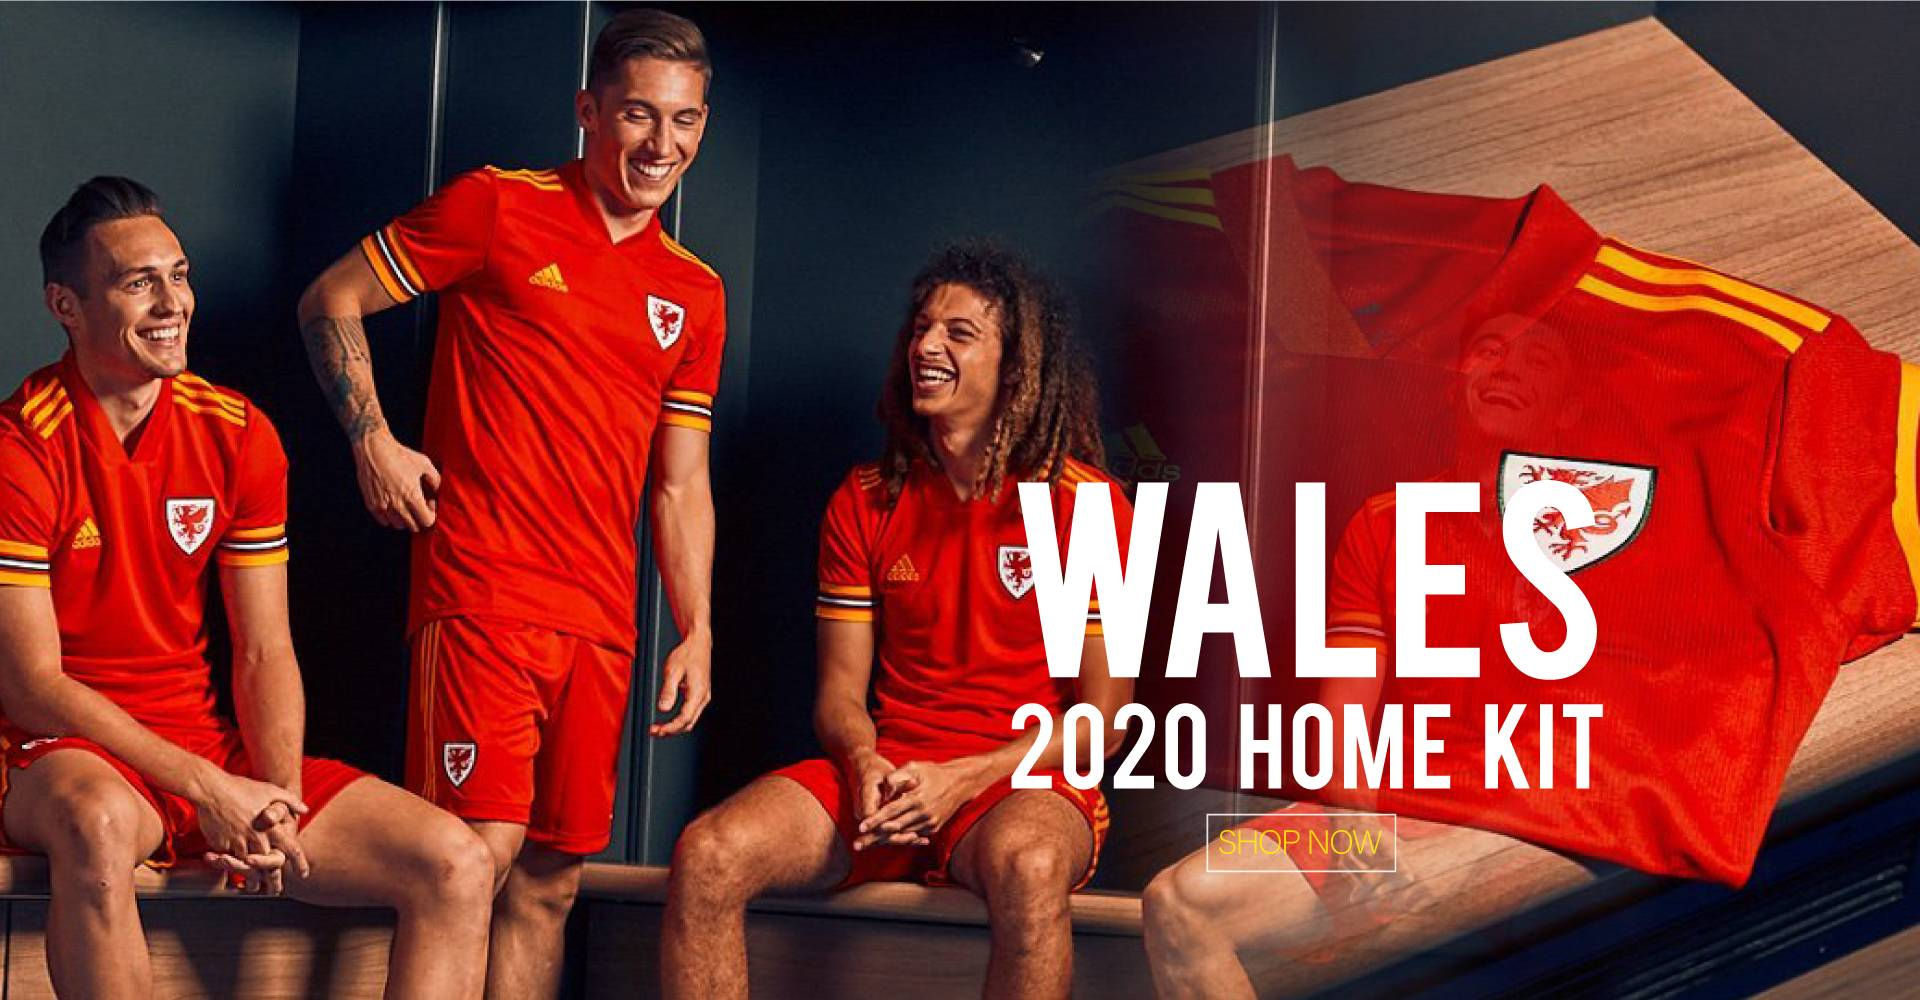 wales 2020 home